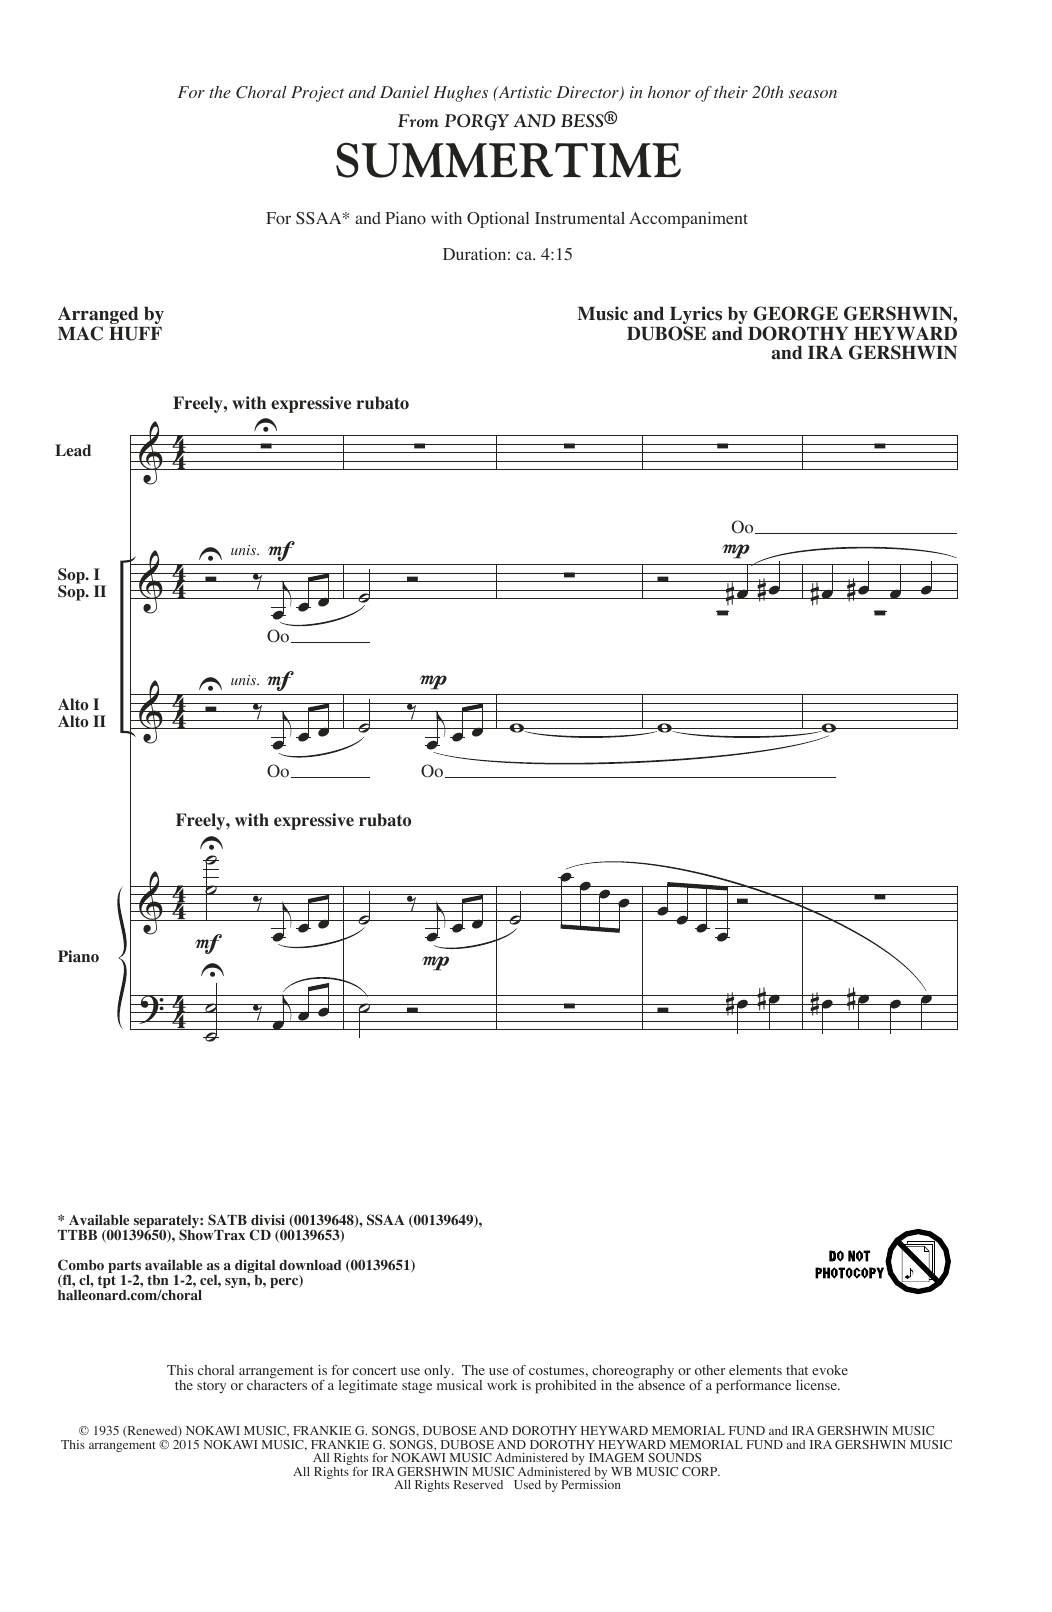 George Gershwin Summertime (arr. Mac Huff) sheet music notes and chords